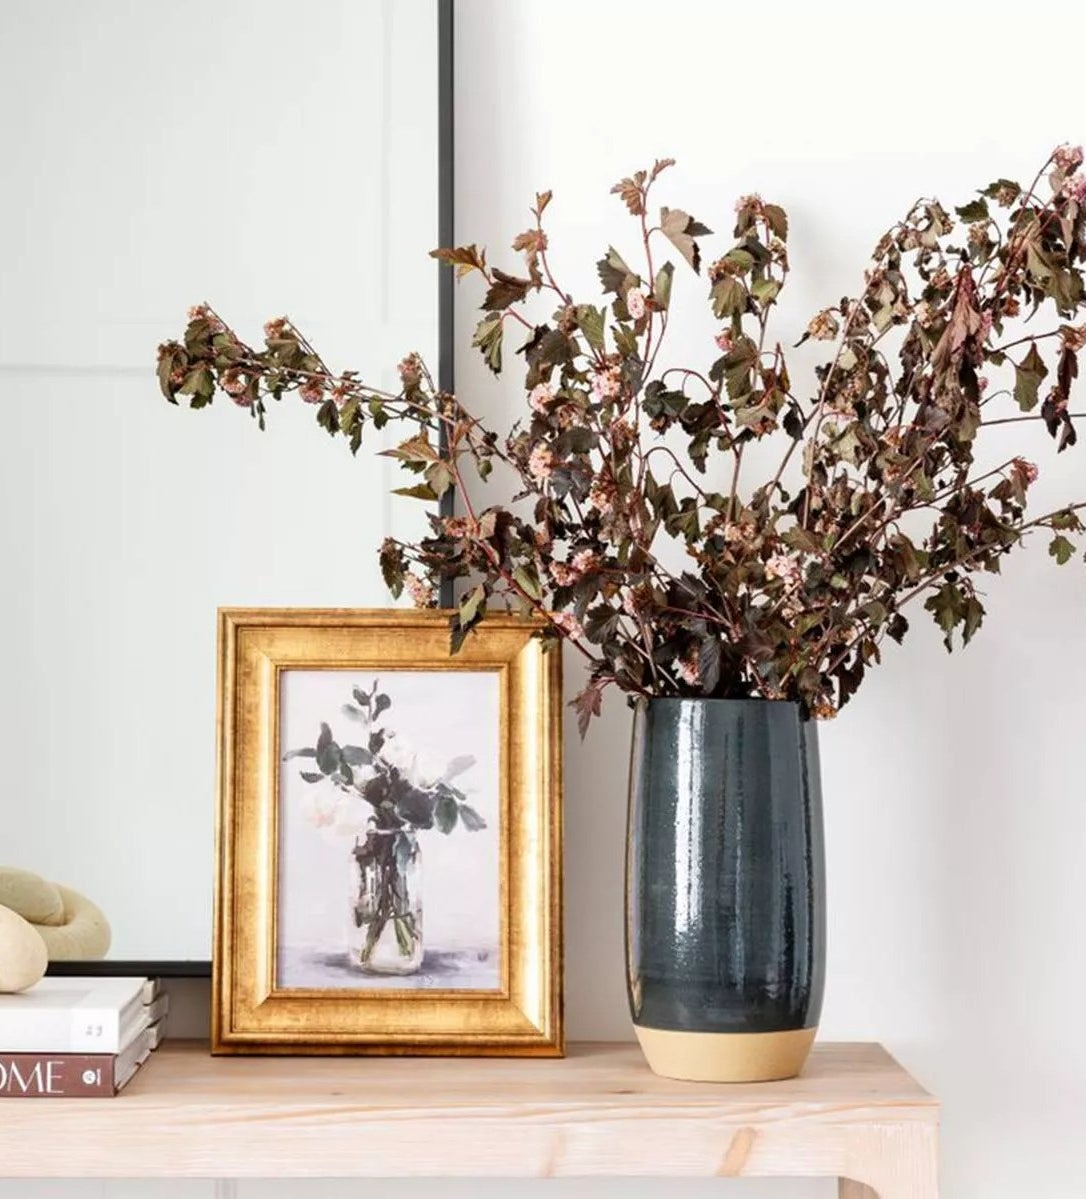 The vase with flowers on an entryway table